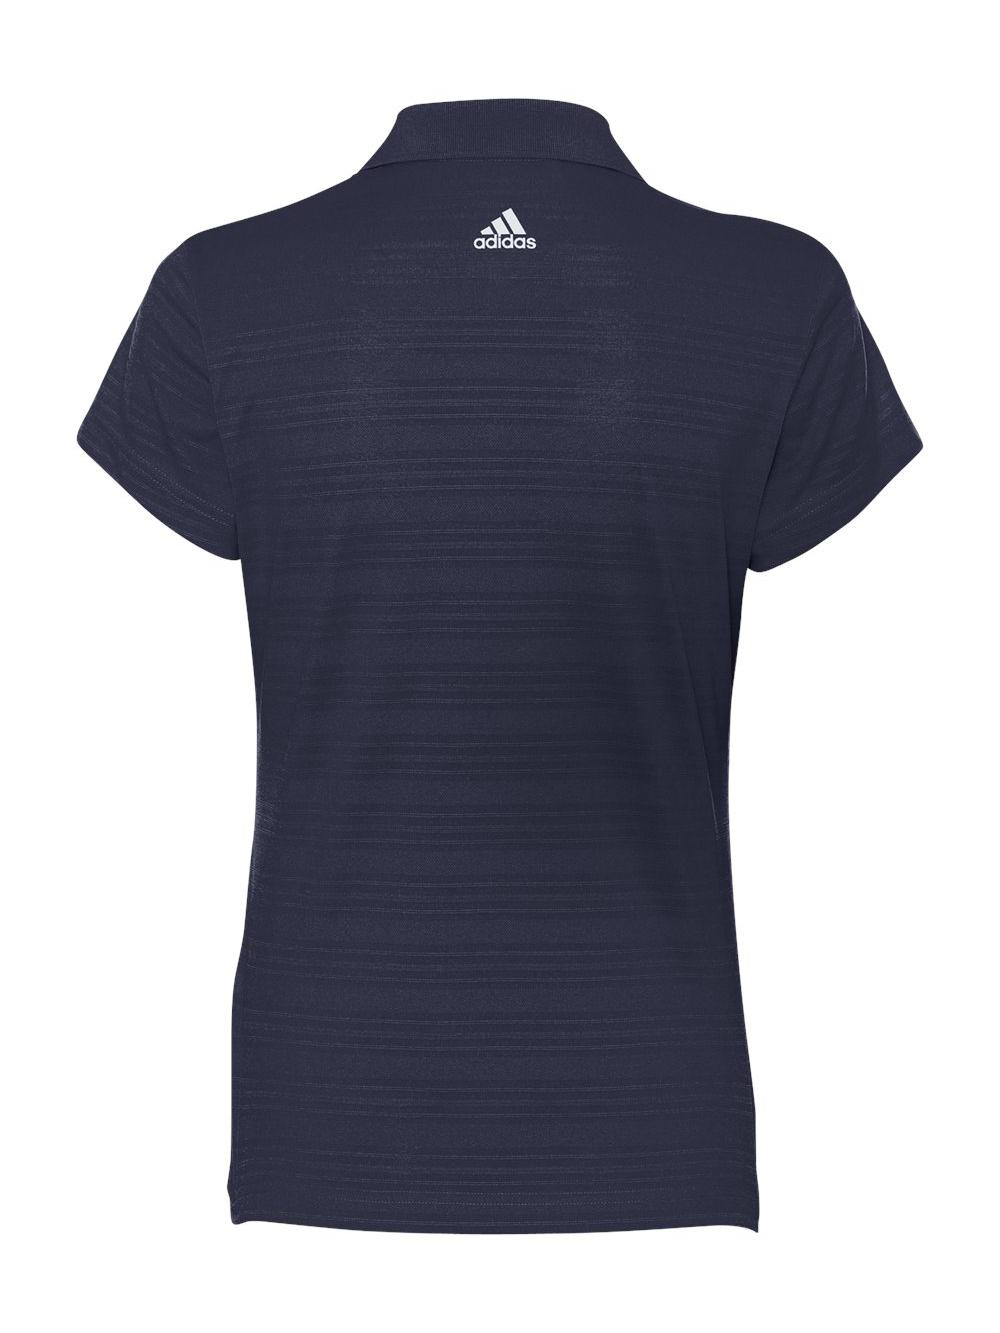 Adidas-Golf-Women-039-s-ClimaLite-Textured-Short-Sleeve-Polo-A162 thumbnail 7